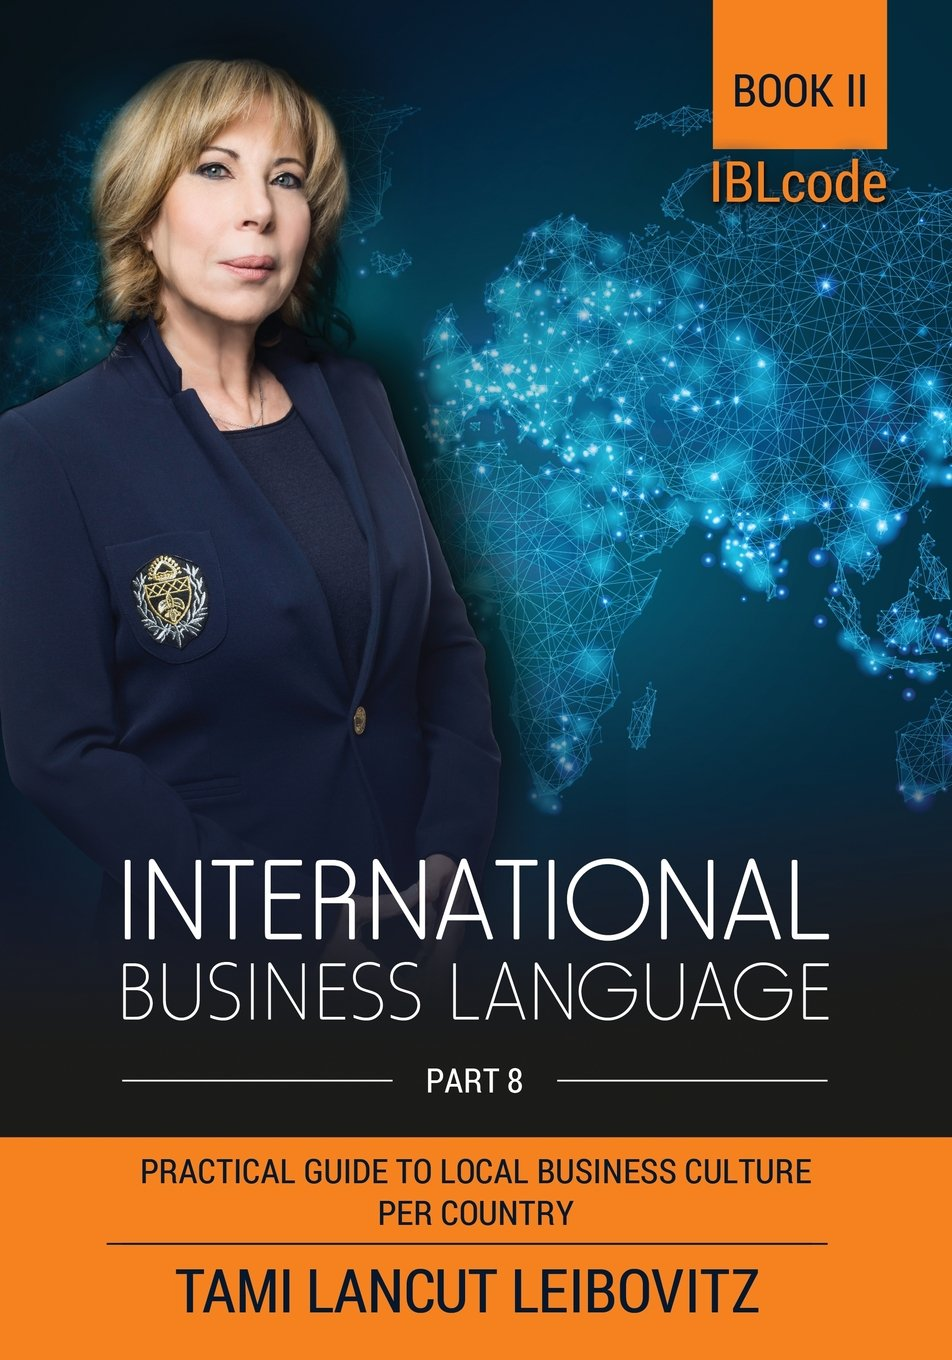 International Business Language: Book 2: Practical Guide to Local Business Culture Per Country by Tami Lancut Leibovitz